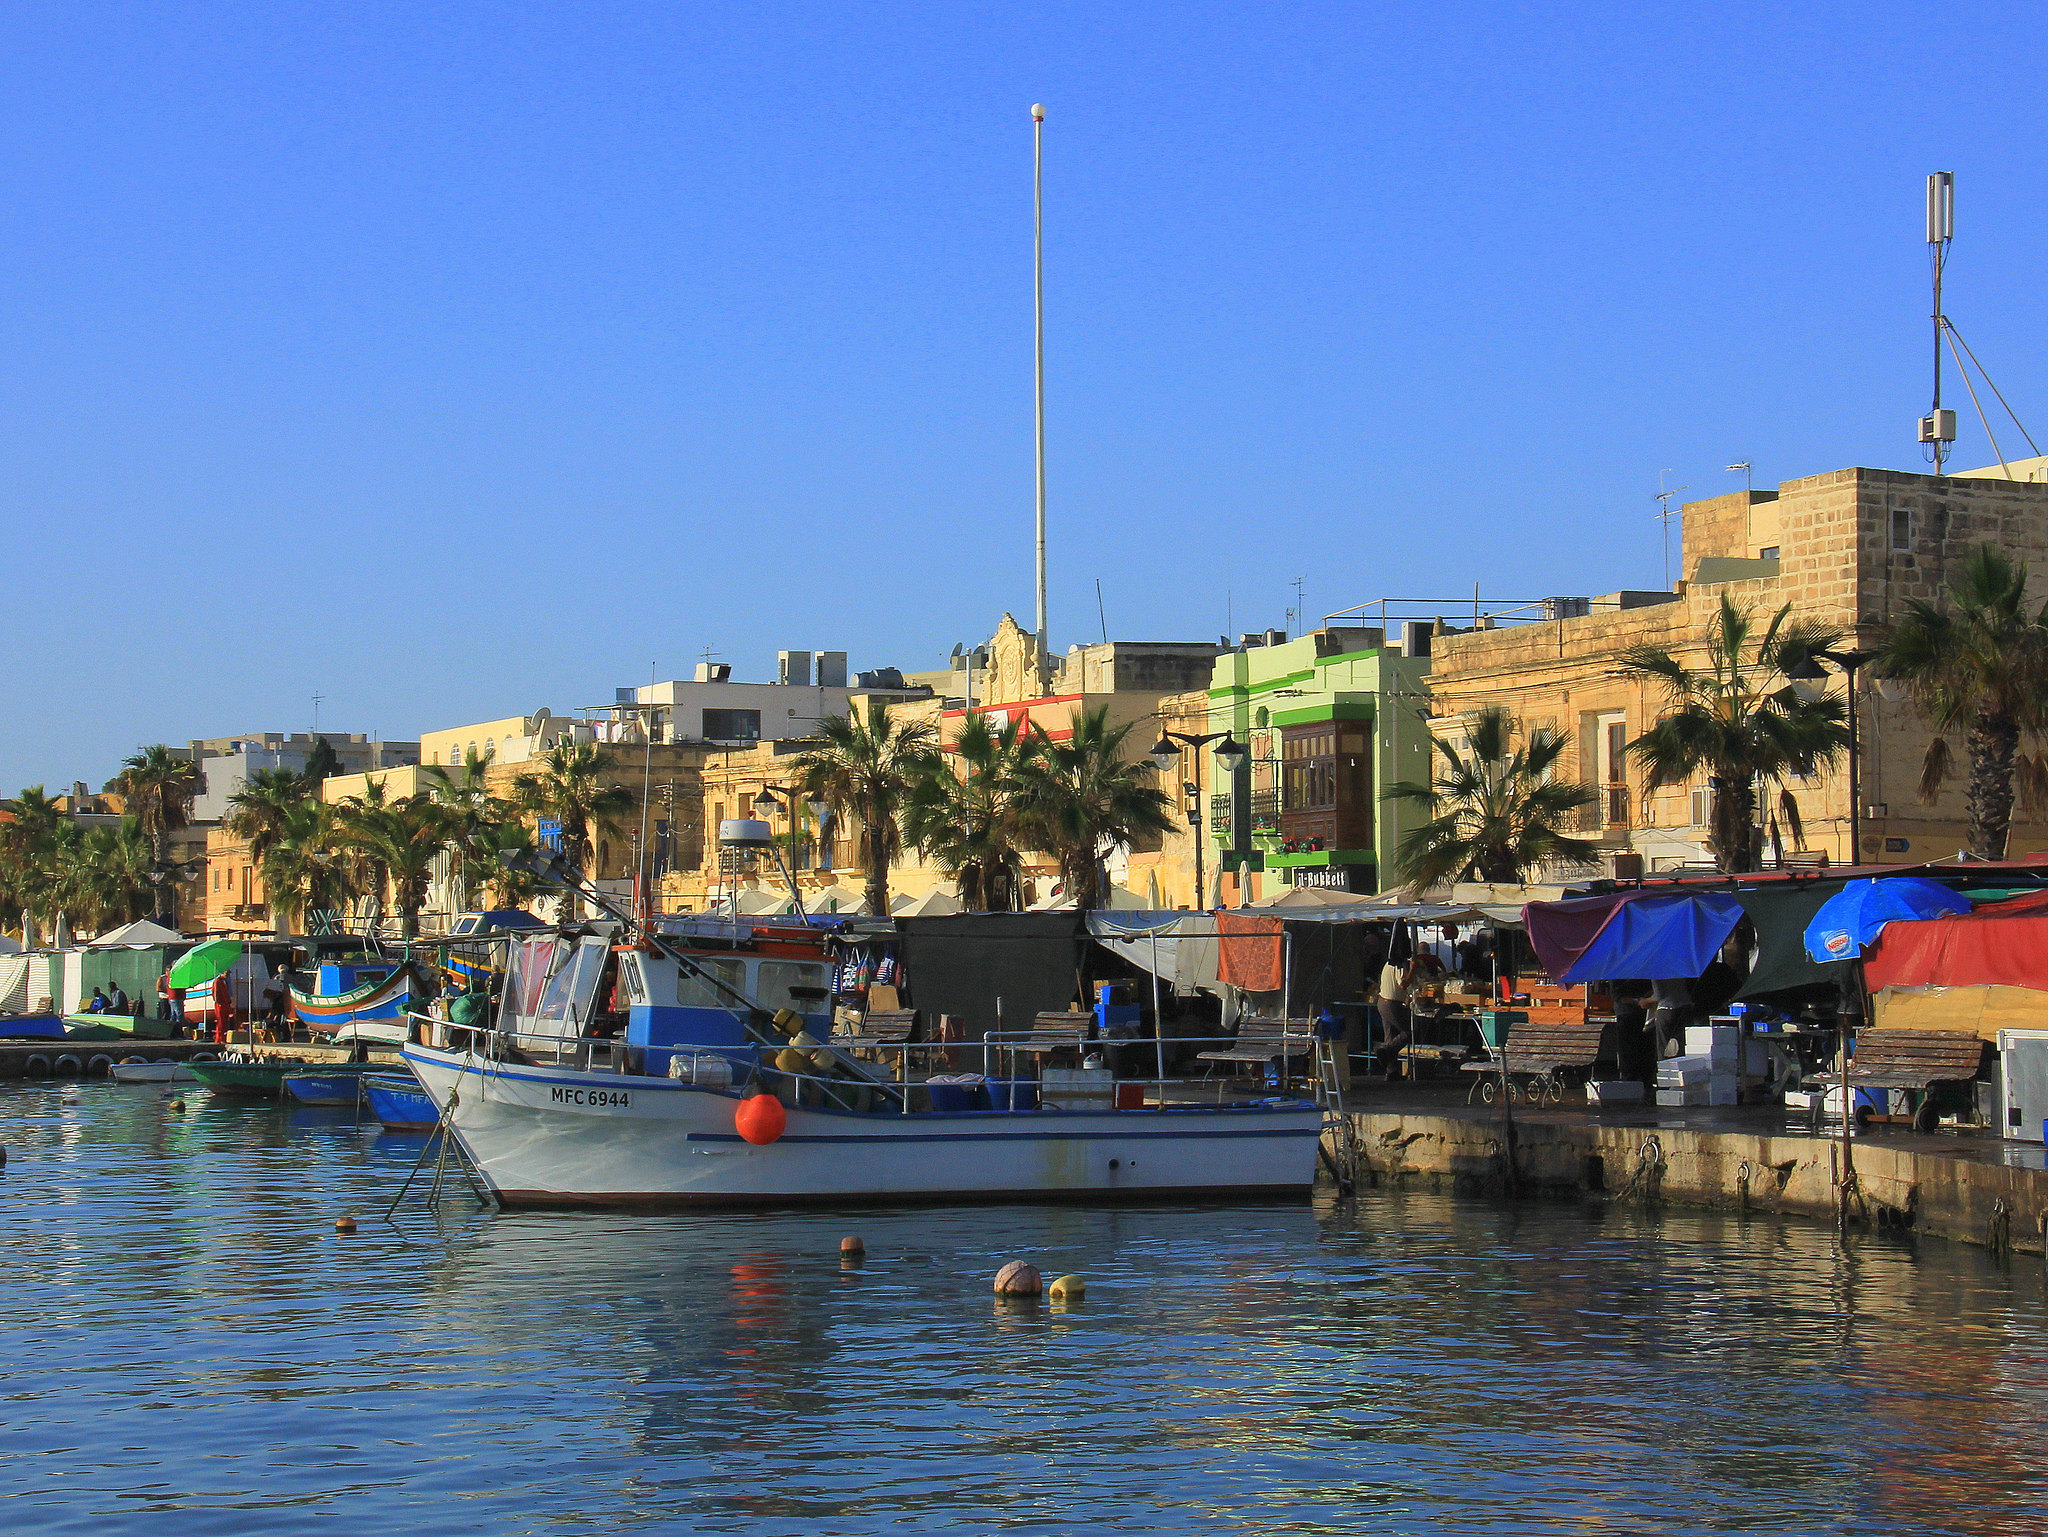 Marsaxlokk is synonymous with colourful fishing boats